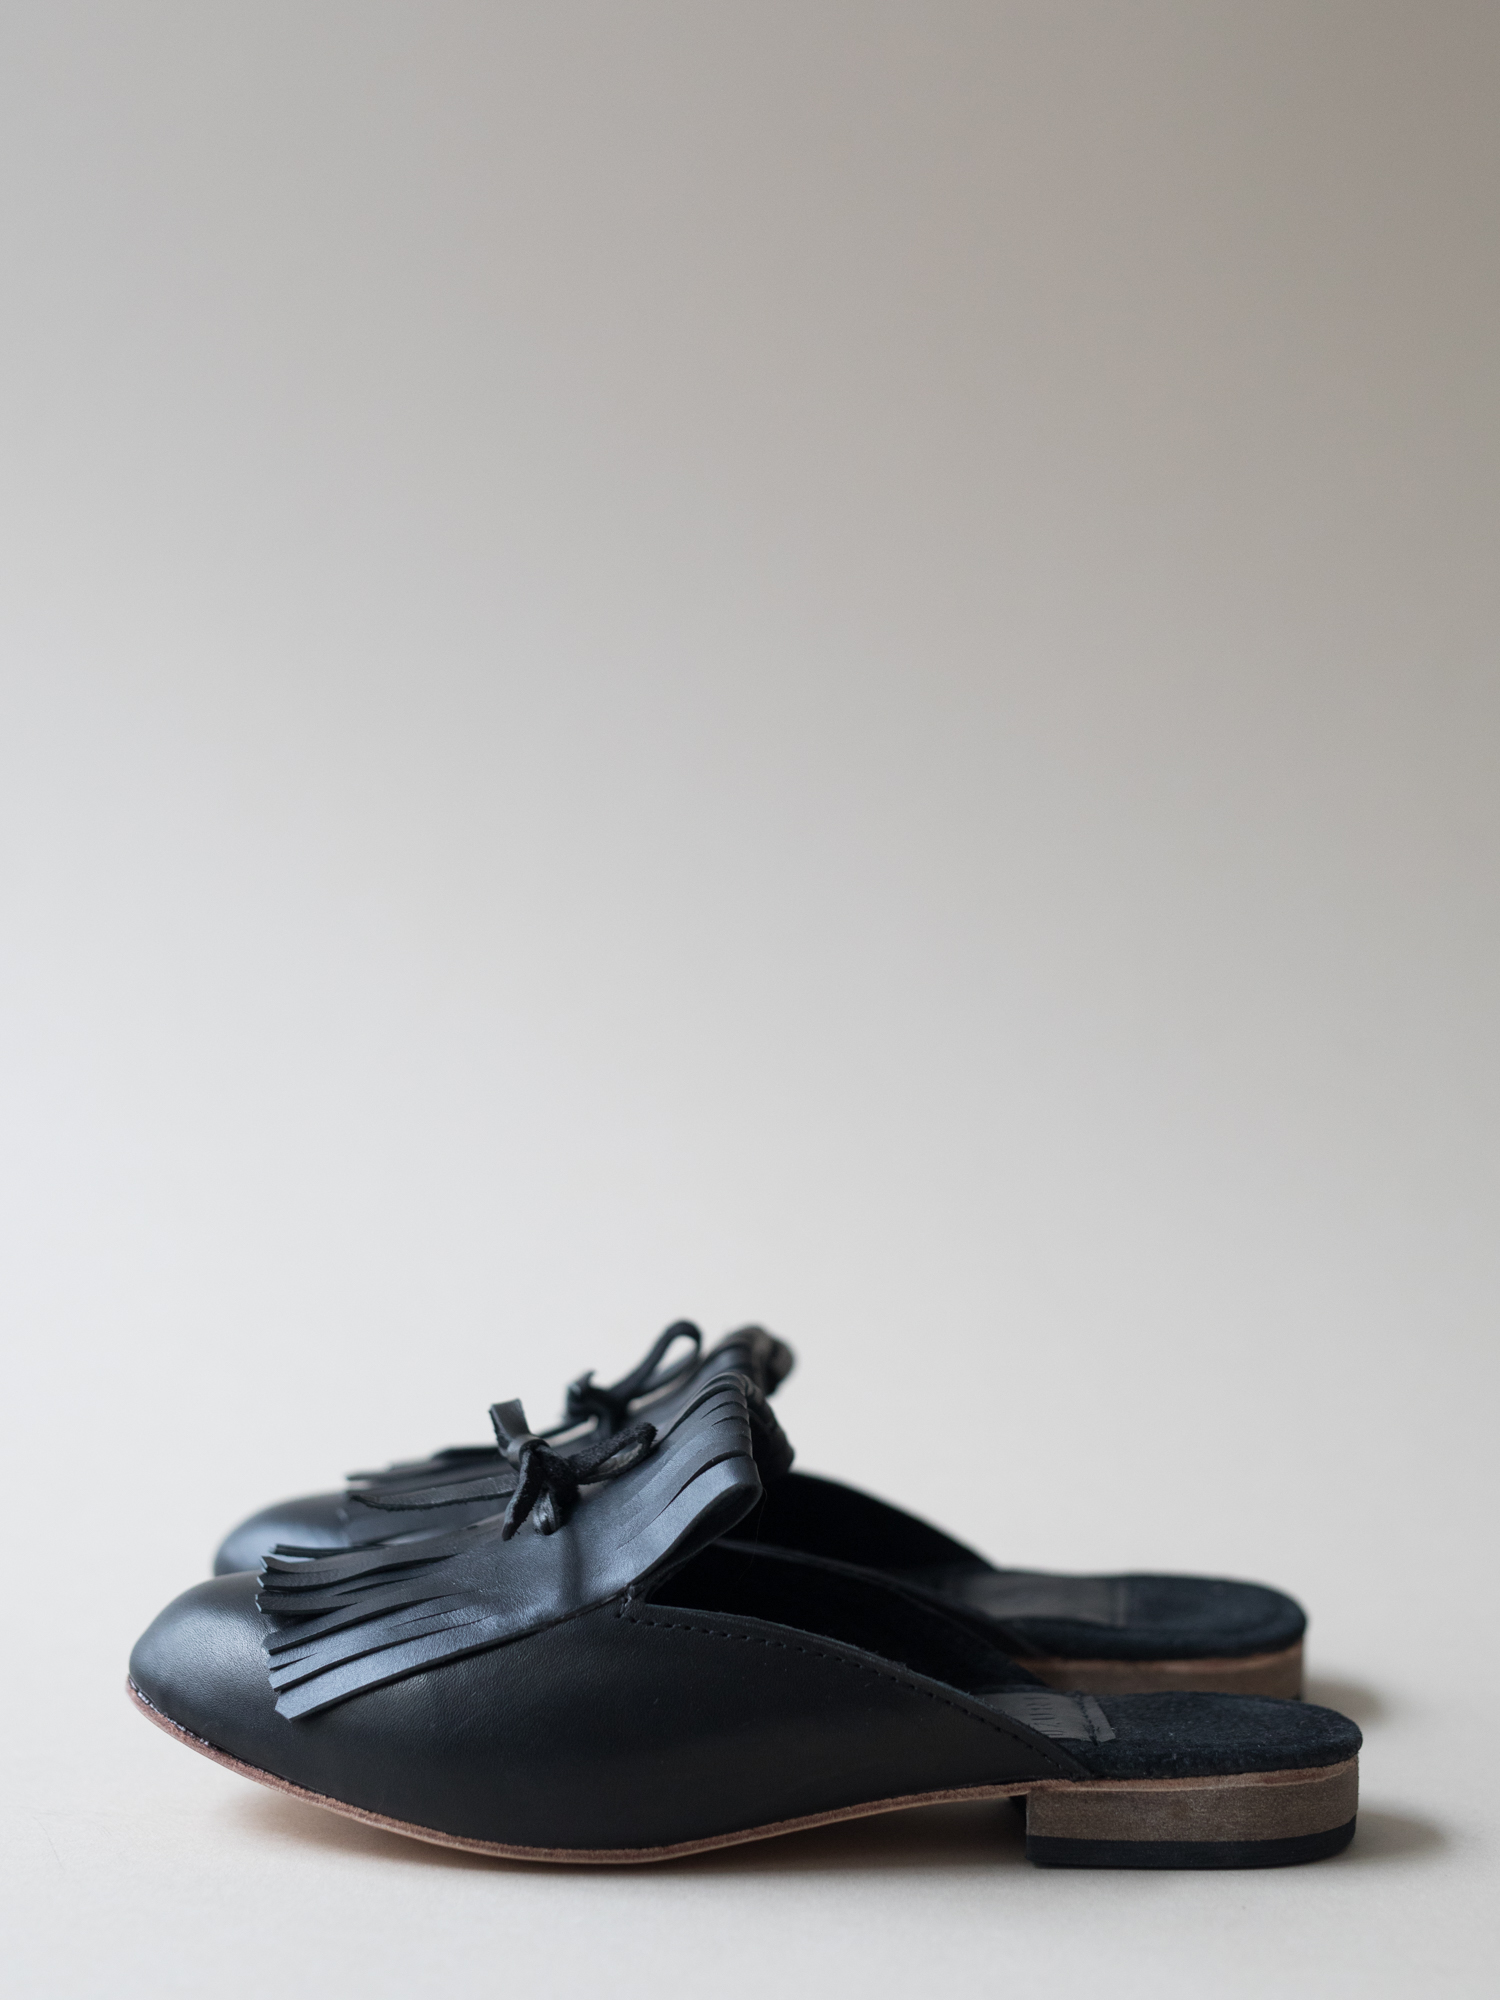 Pindo · Swahili translation : fringe